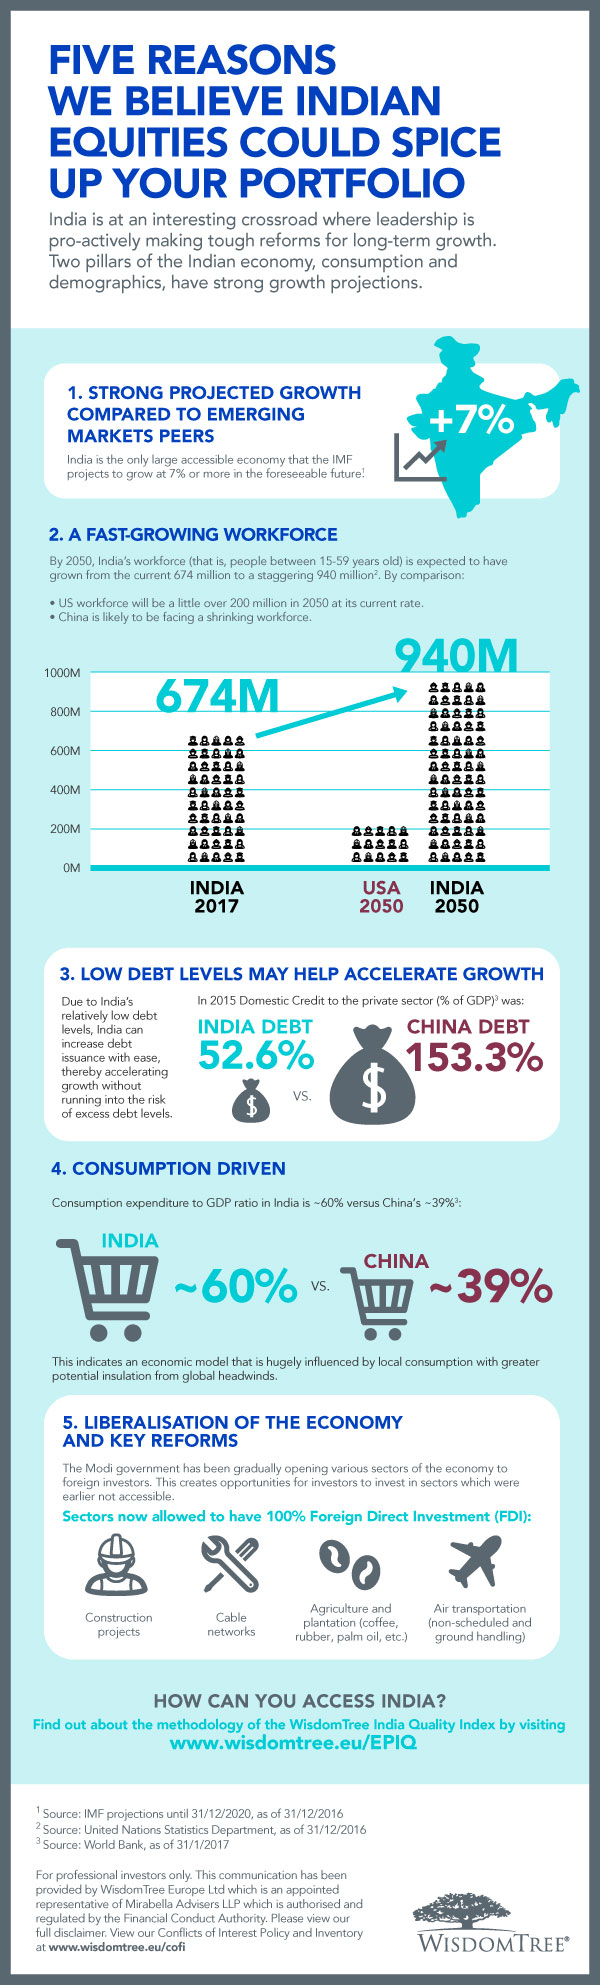 Indian equities infographic